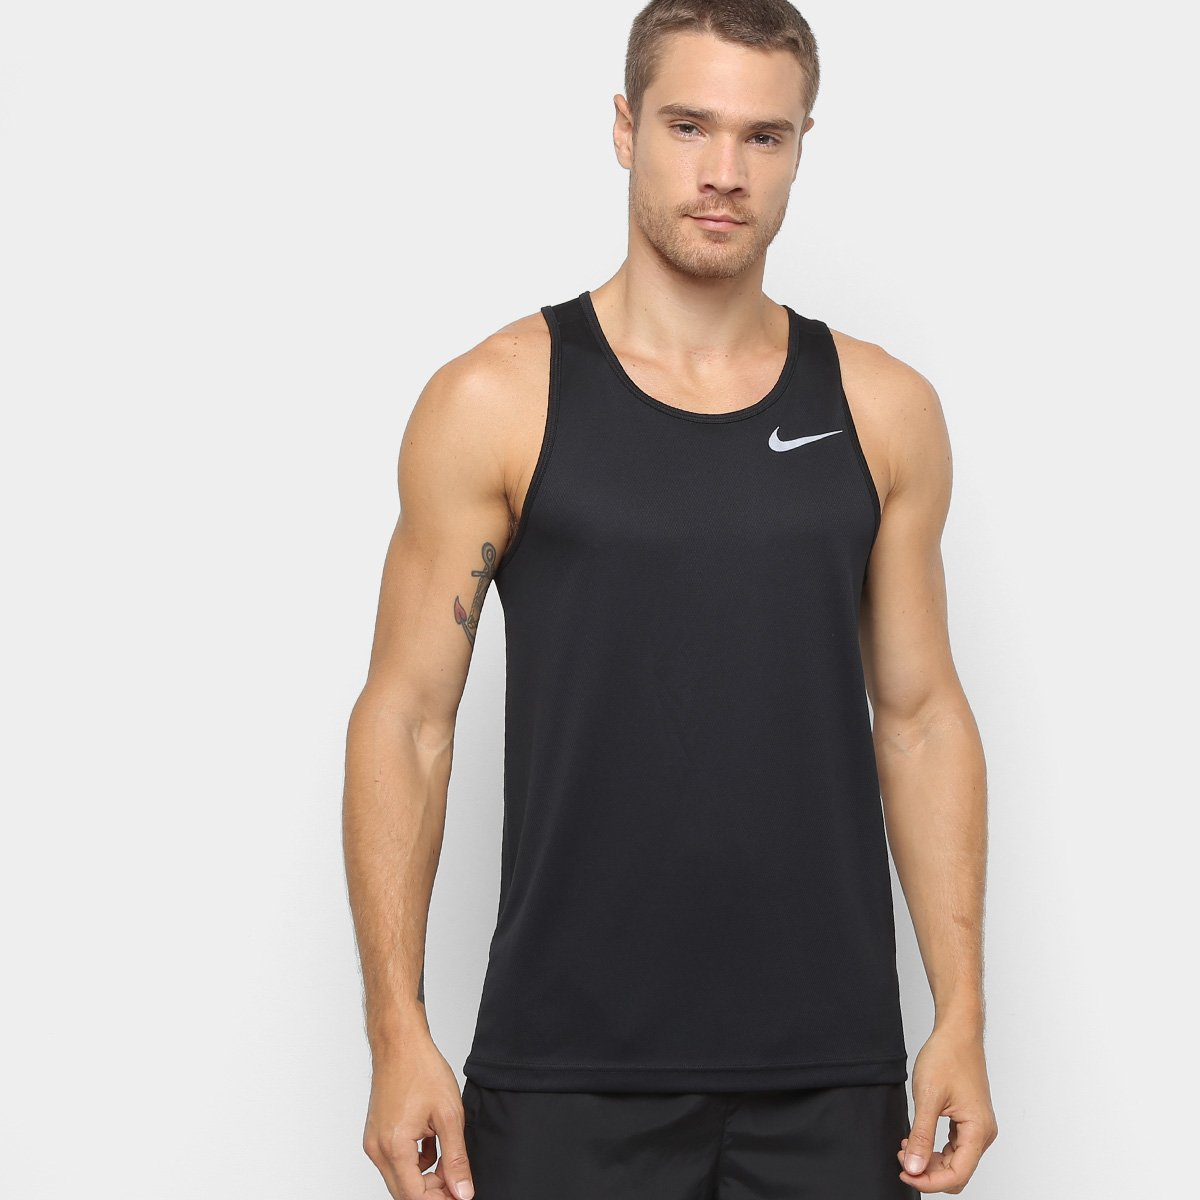 Haciendo Culpa Sinfonía  Camiseta Regata Nike Dri-fit Breathe Run Masculino